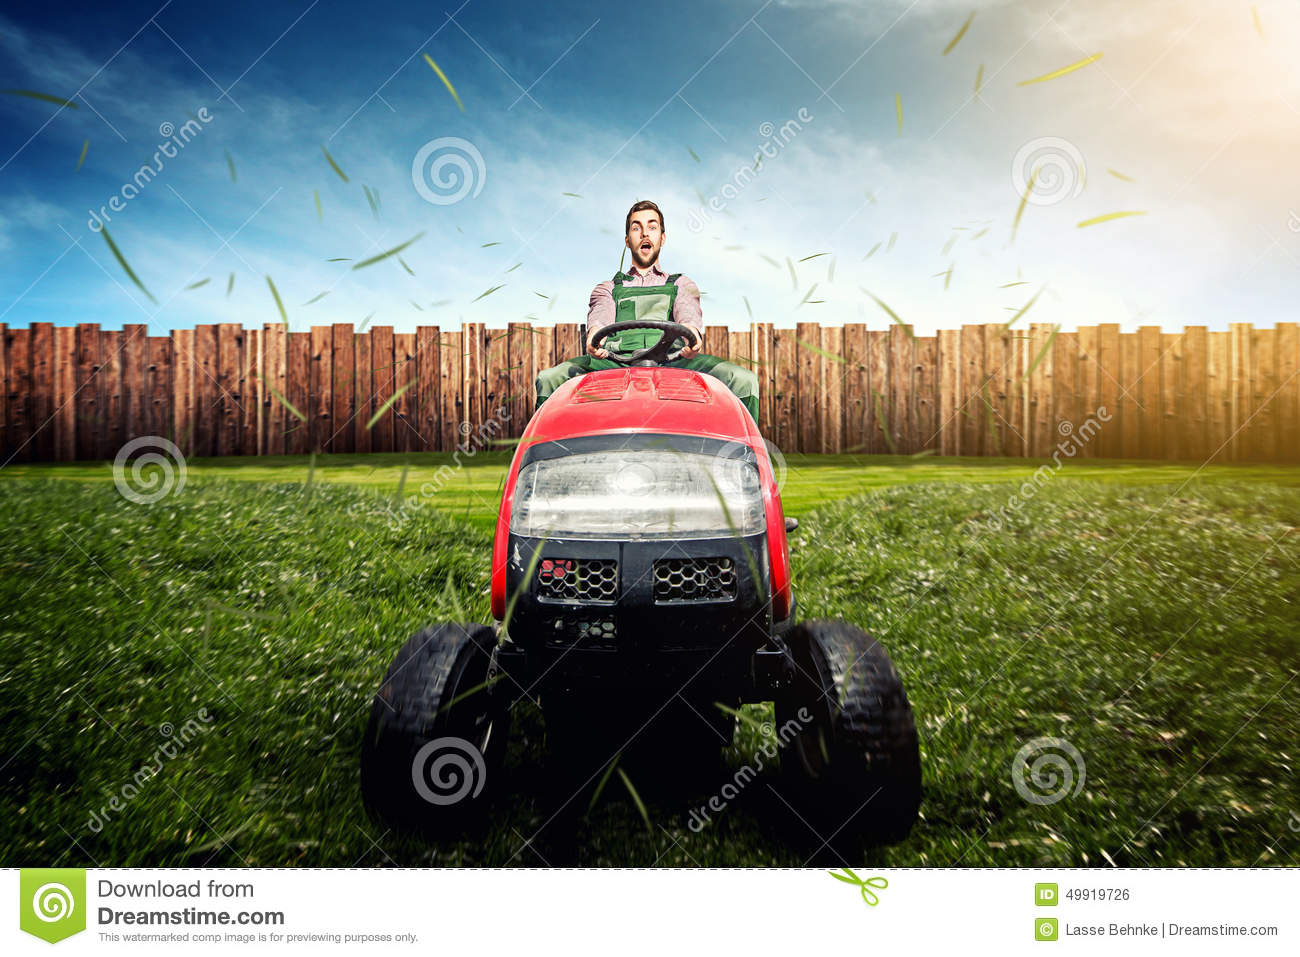 Man On Tractor Lawn Enforcment : Lawn tractor stock photo image